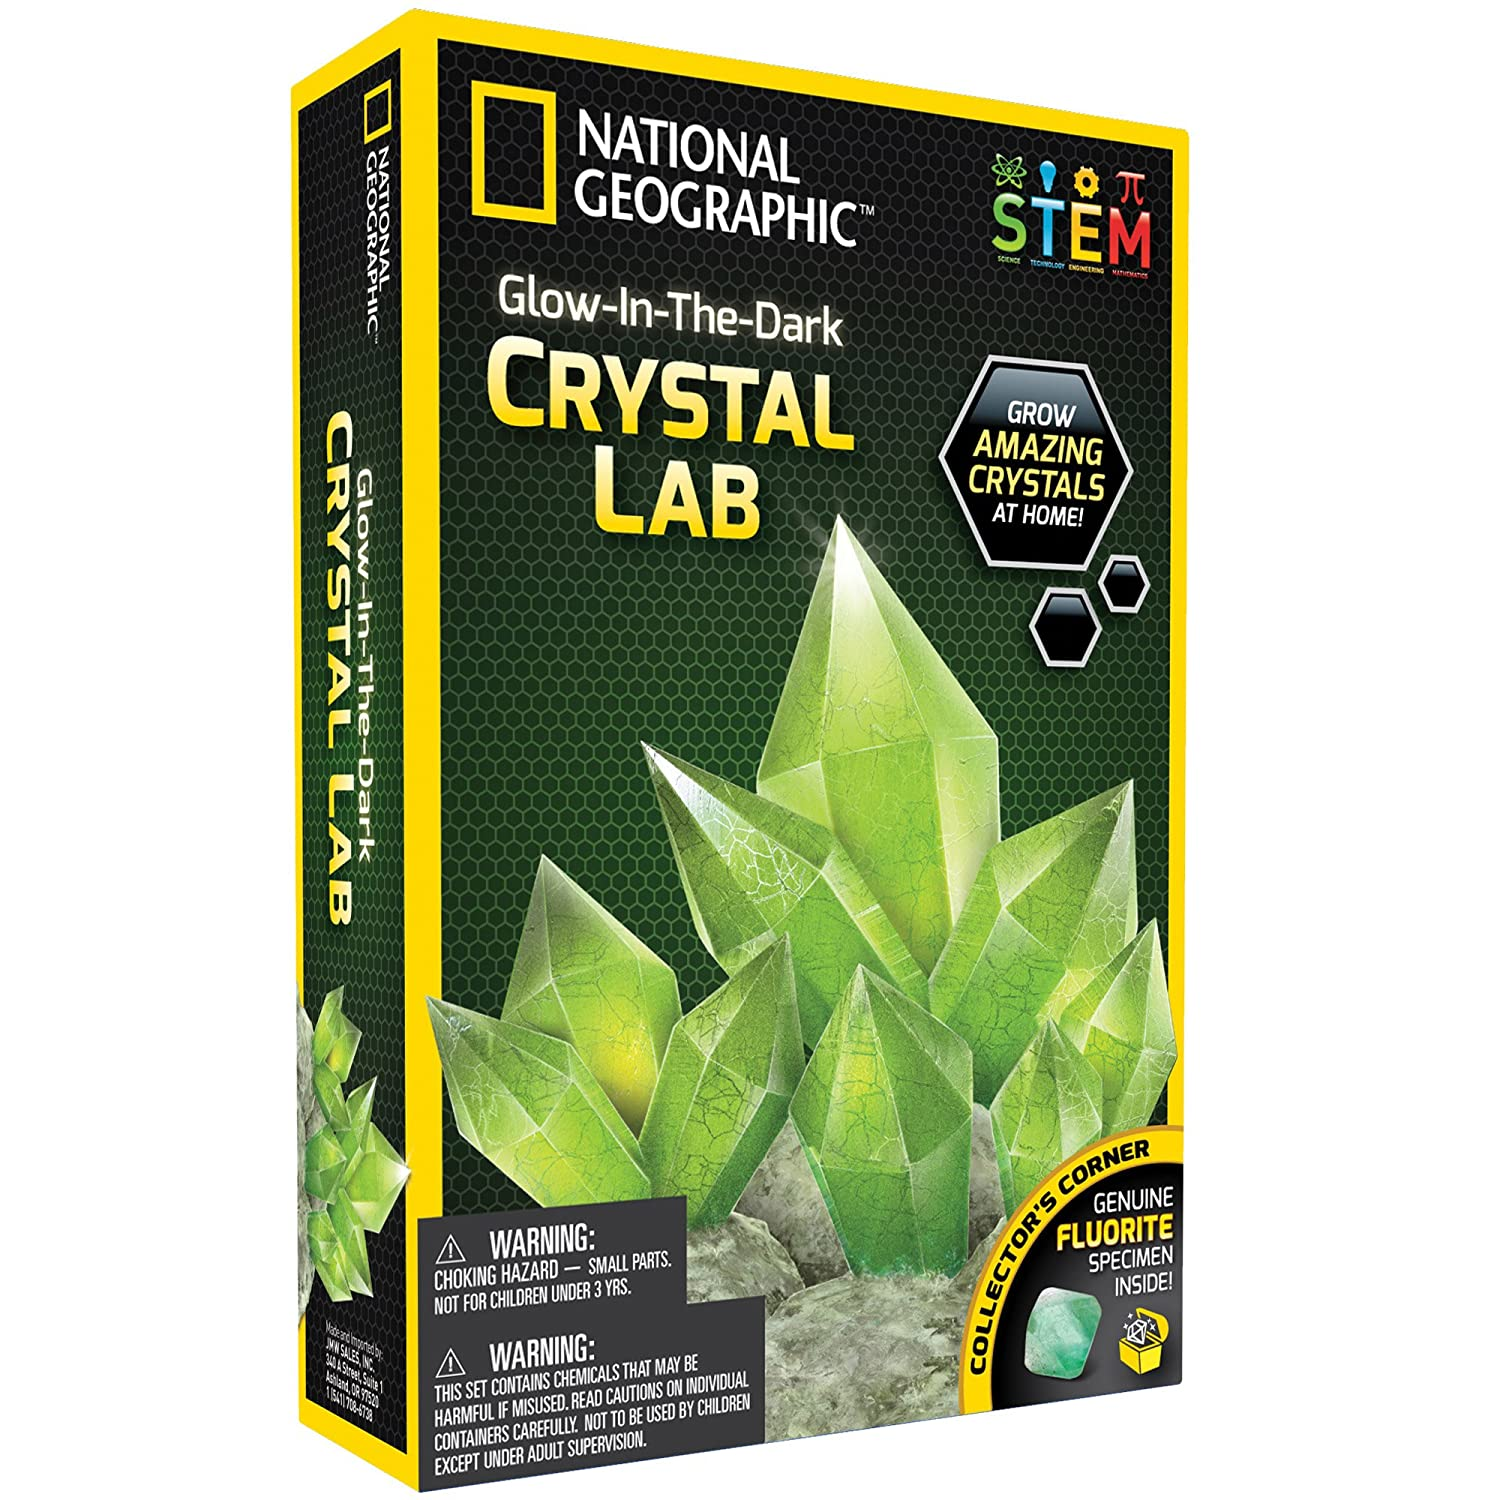 NATIONAL GEOGRAPHIC Glow-in-the-Dark Crystal Growing Lab - DIY Crystal Creation - Includes Real Fluorite Crystal Specimen